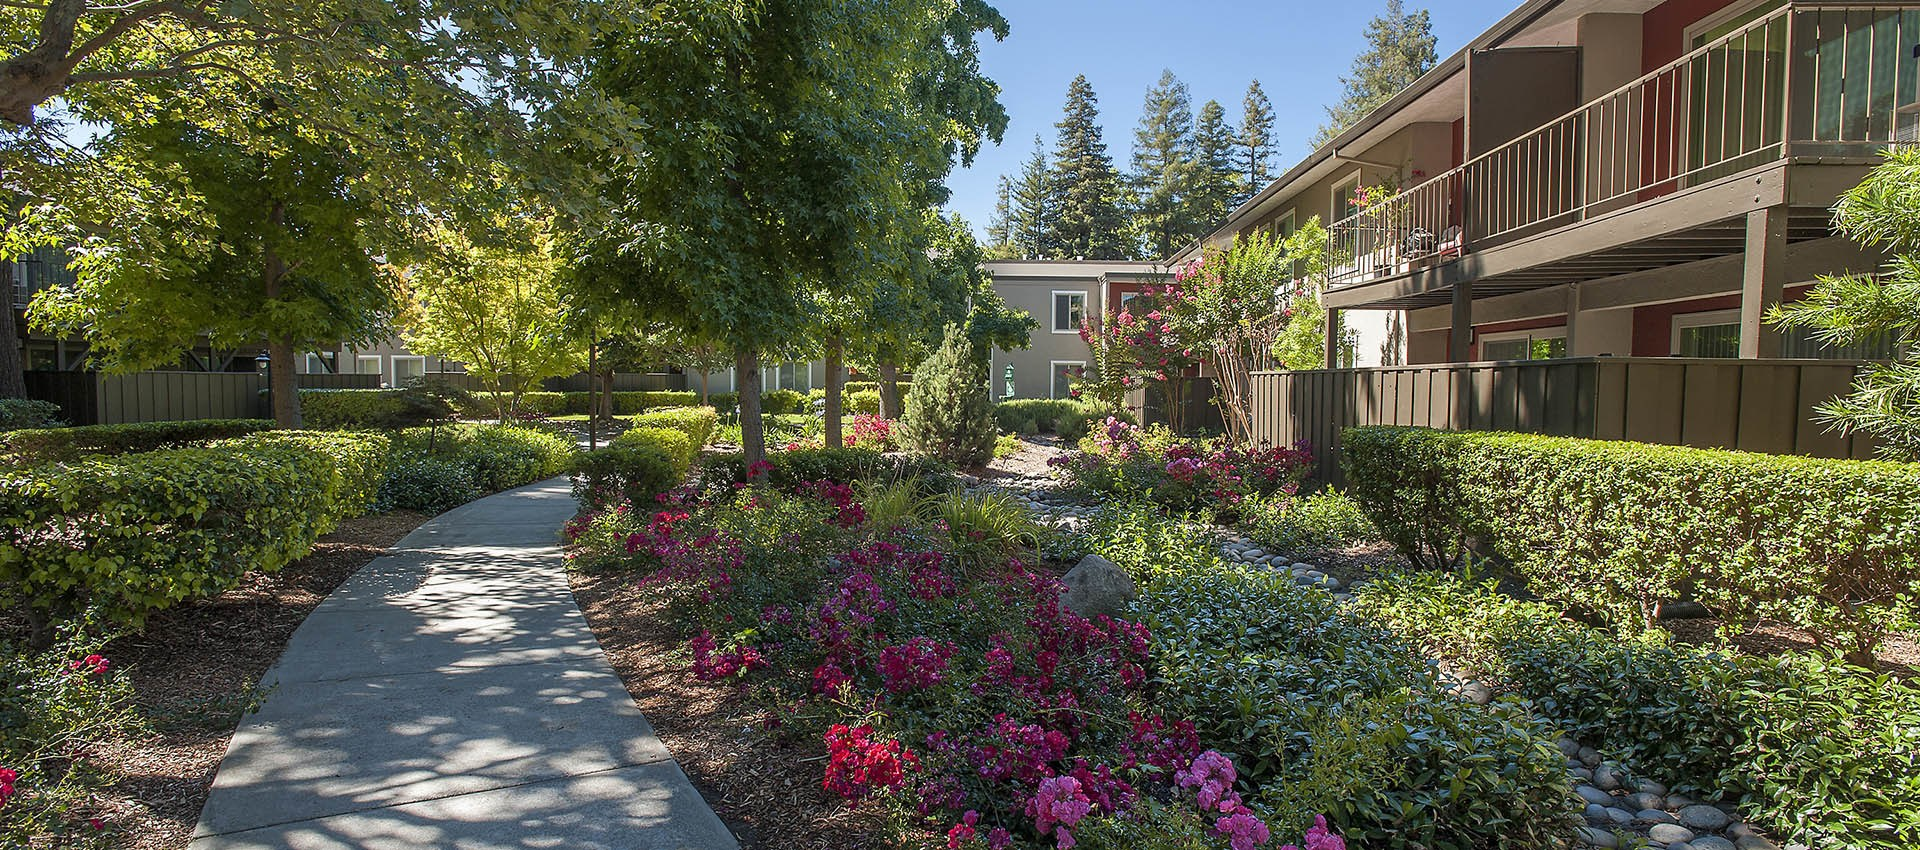 Lovely Courtyards at Flora Condominium Rentals in Walnut Creek